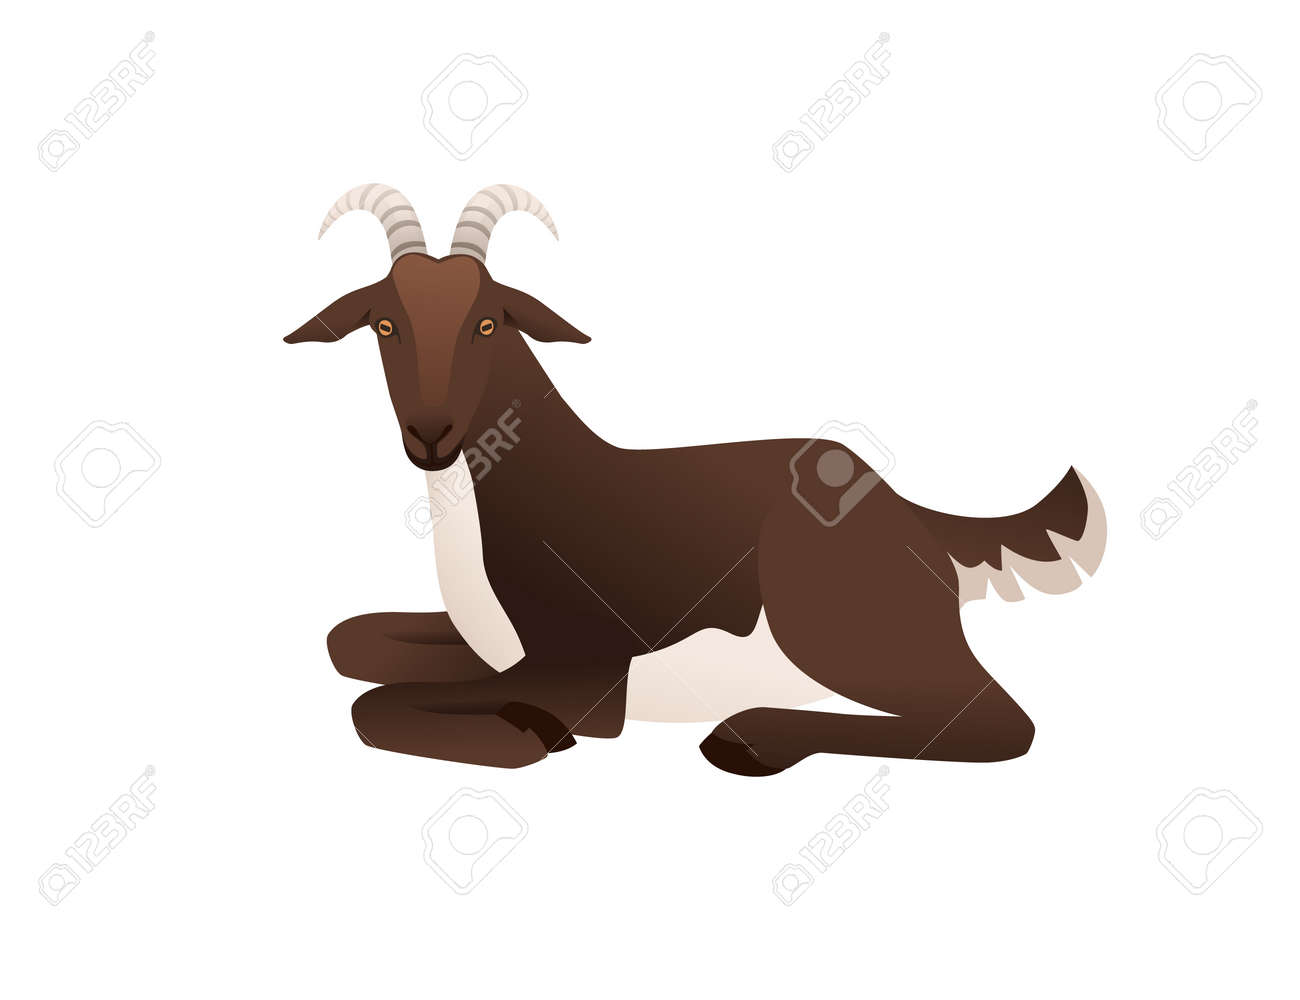 Cute adult brown goat lying on ground farm animal cartoon animal design vector illustration isolated on white background - 168754769